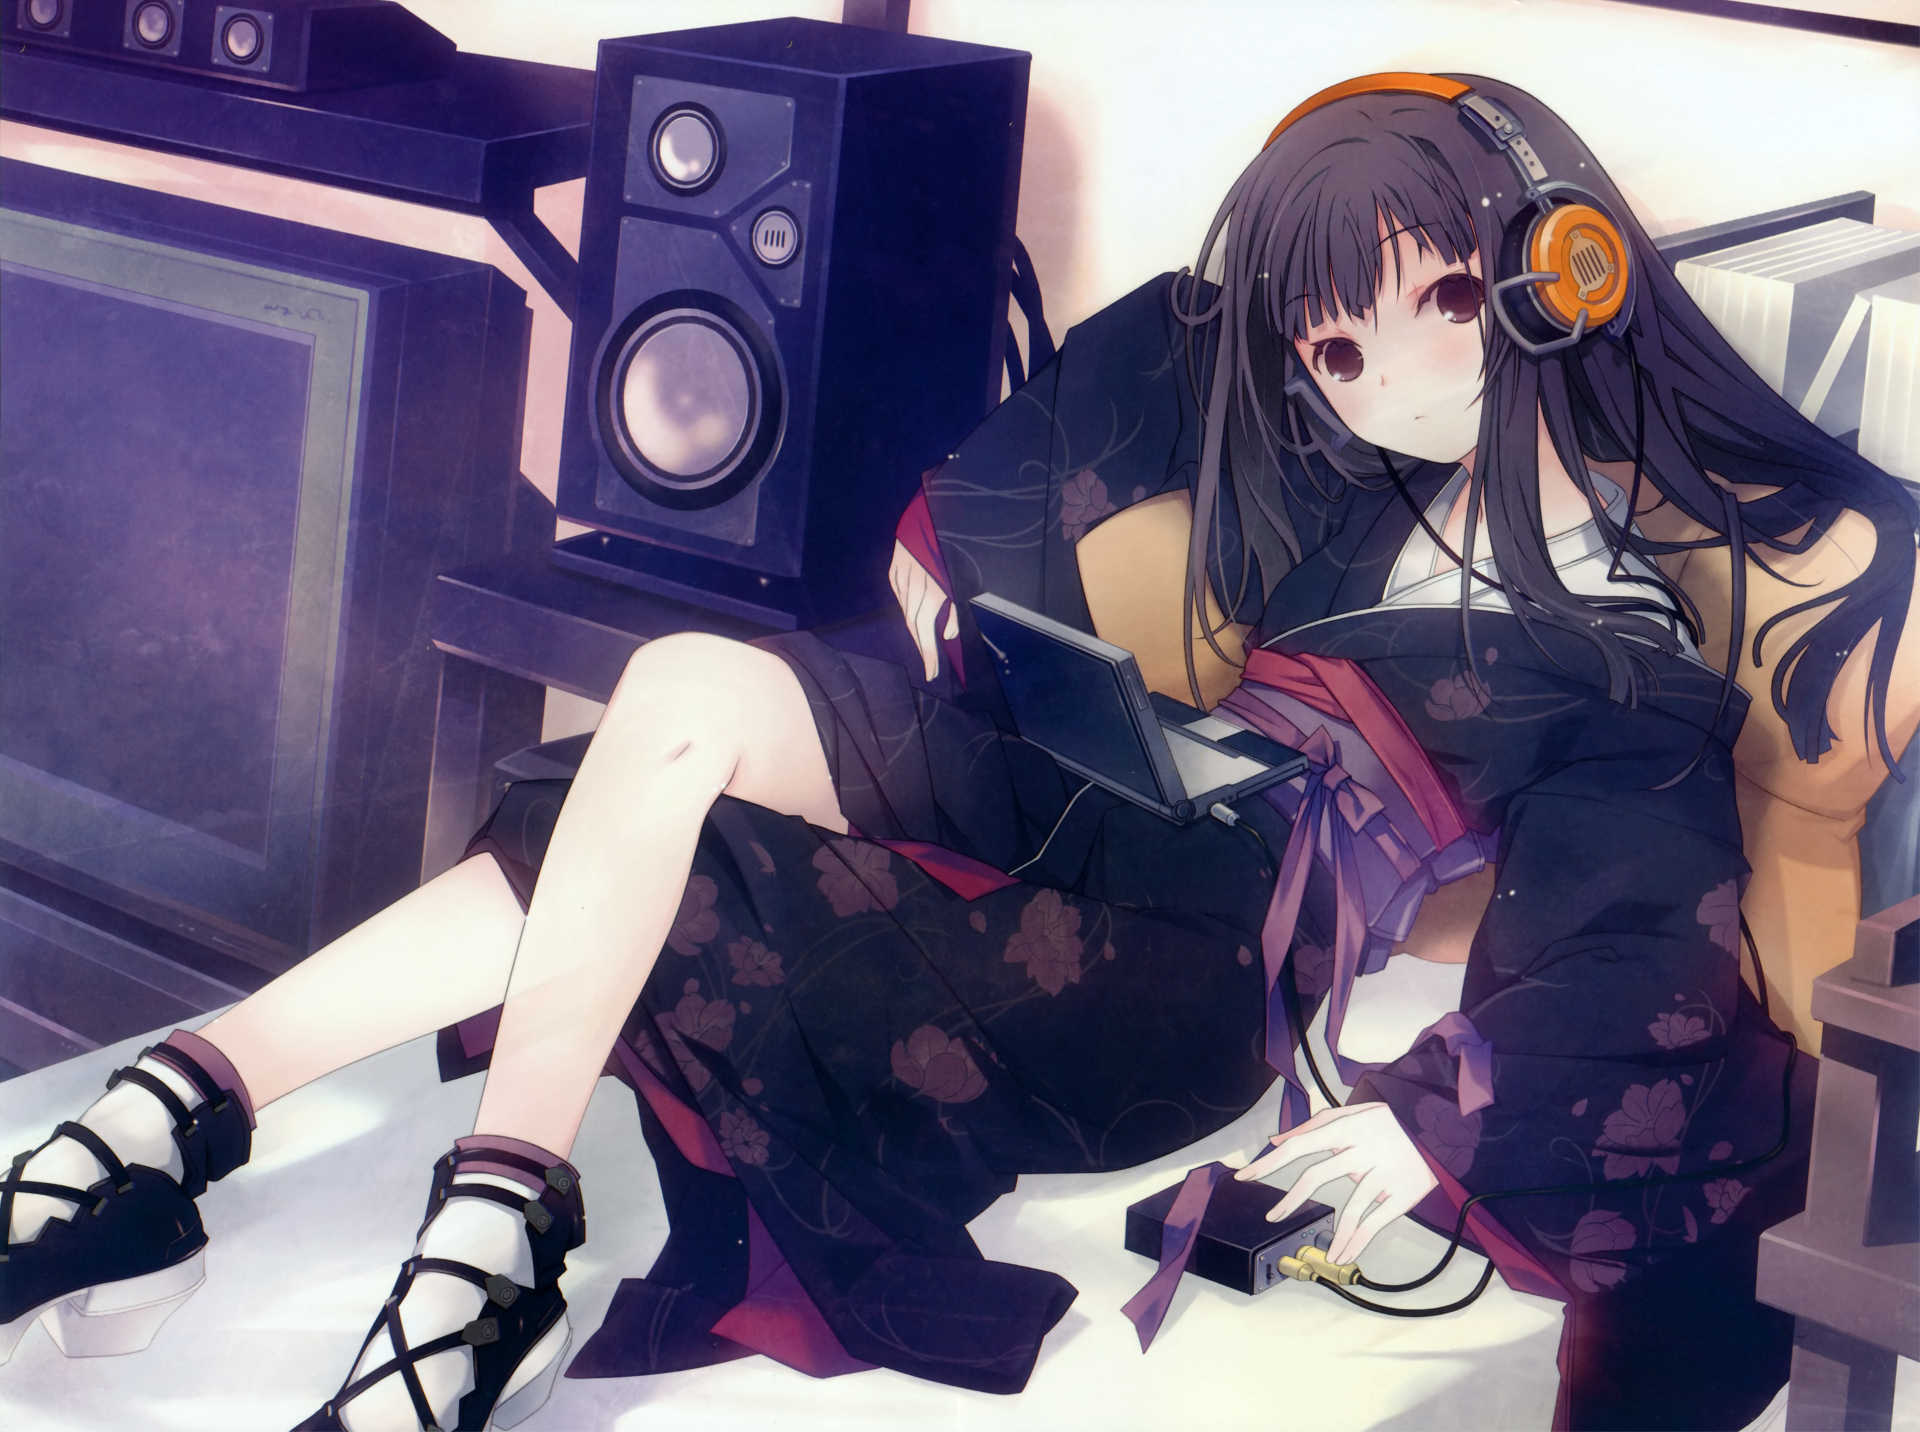 Anime Headphones Girl Anime Long Hair Cute Original Anime Kimono Black Hair Blush Brown Eyes Wallpaper Girl With Headphones Cute Anime Wallpaper Anime Music